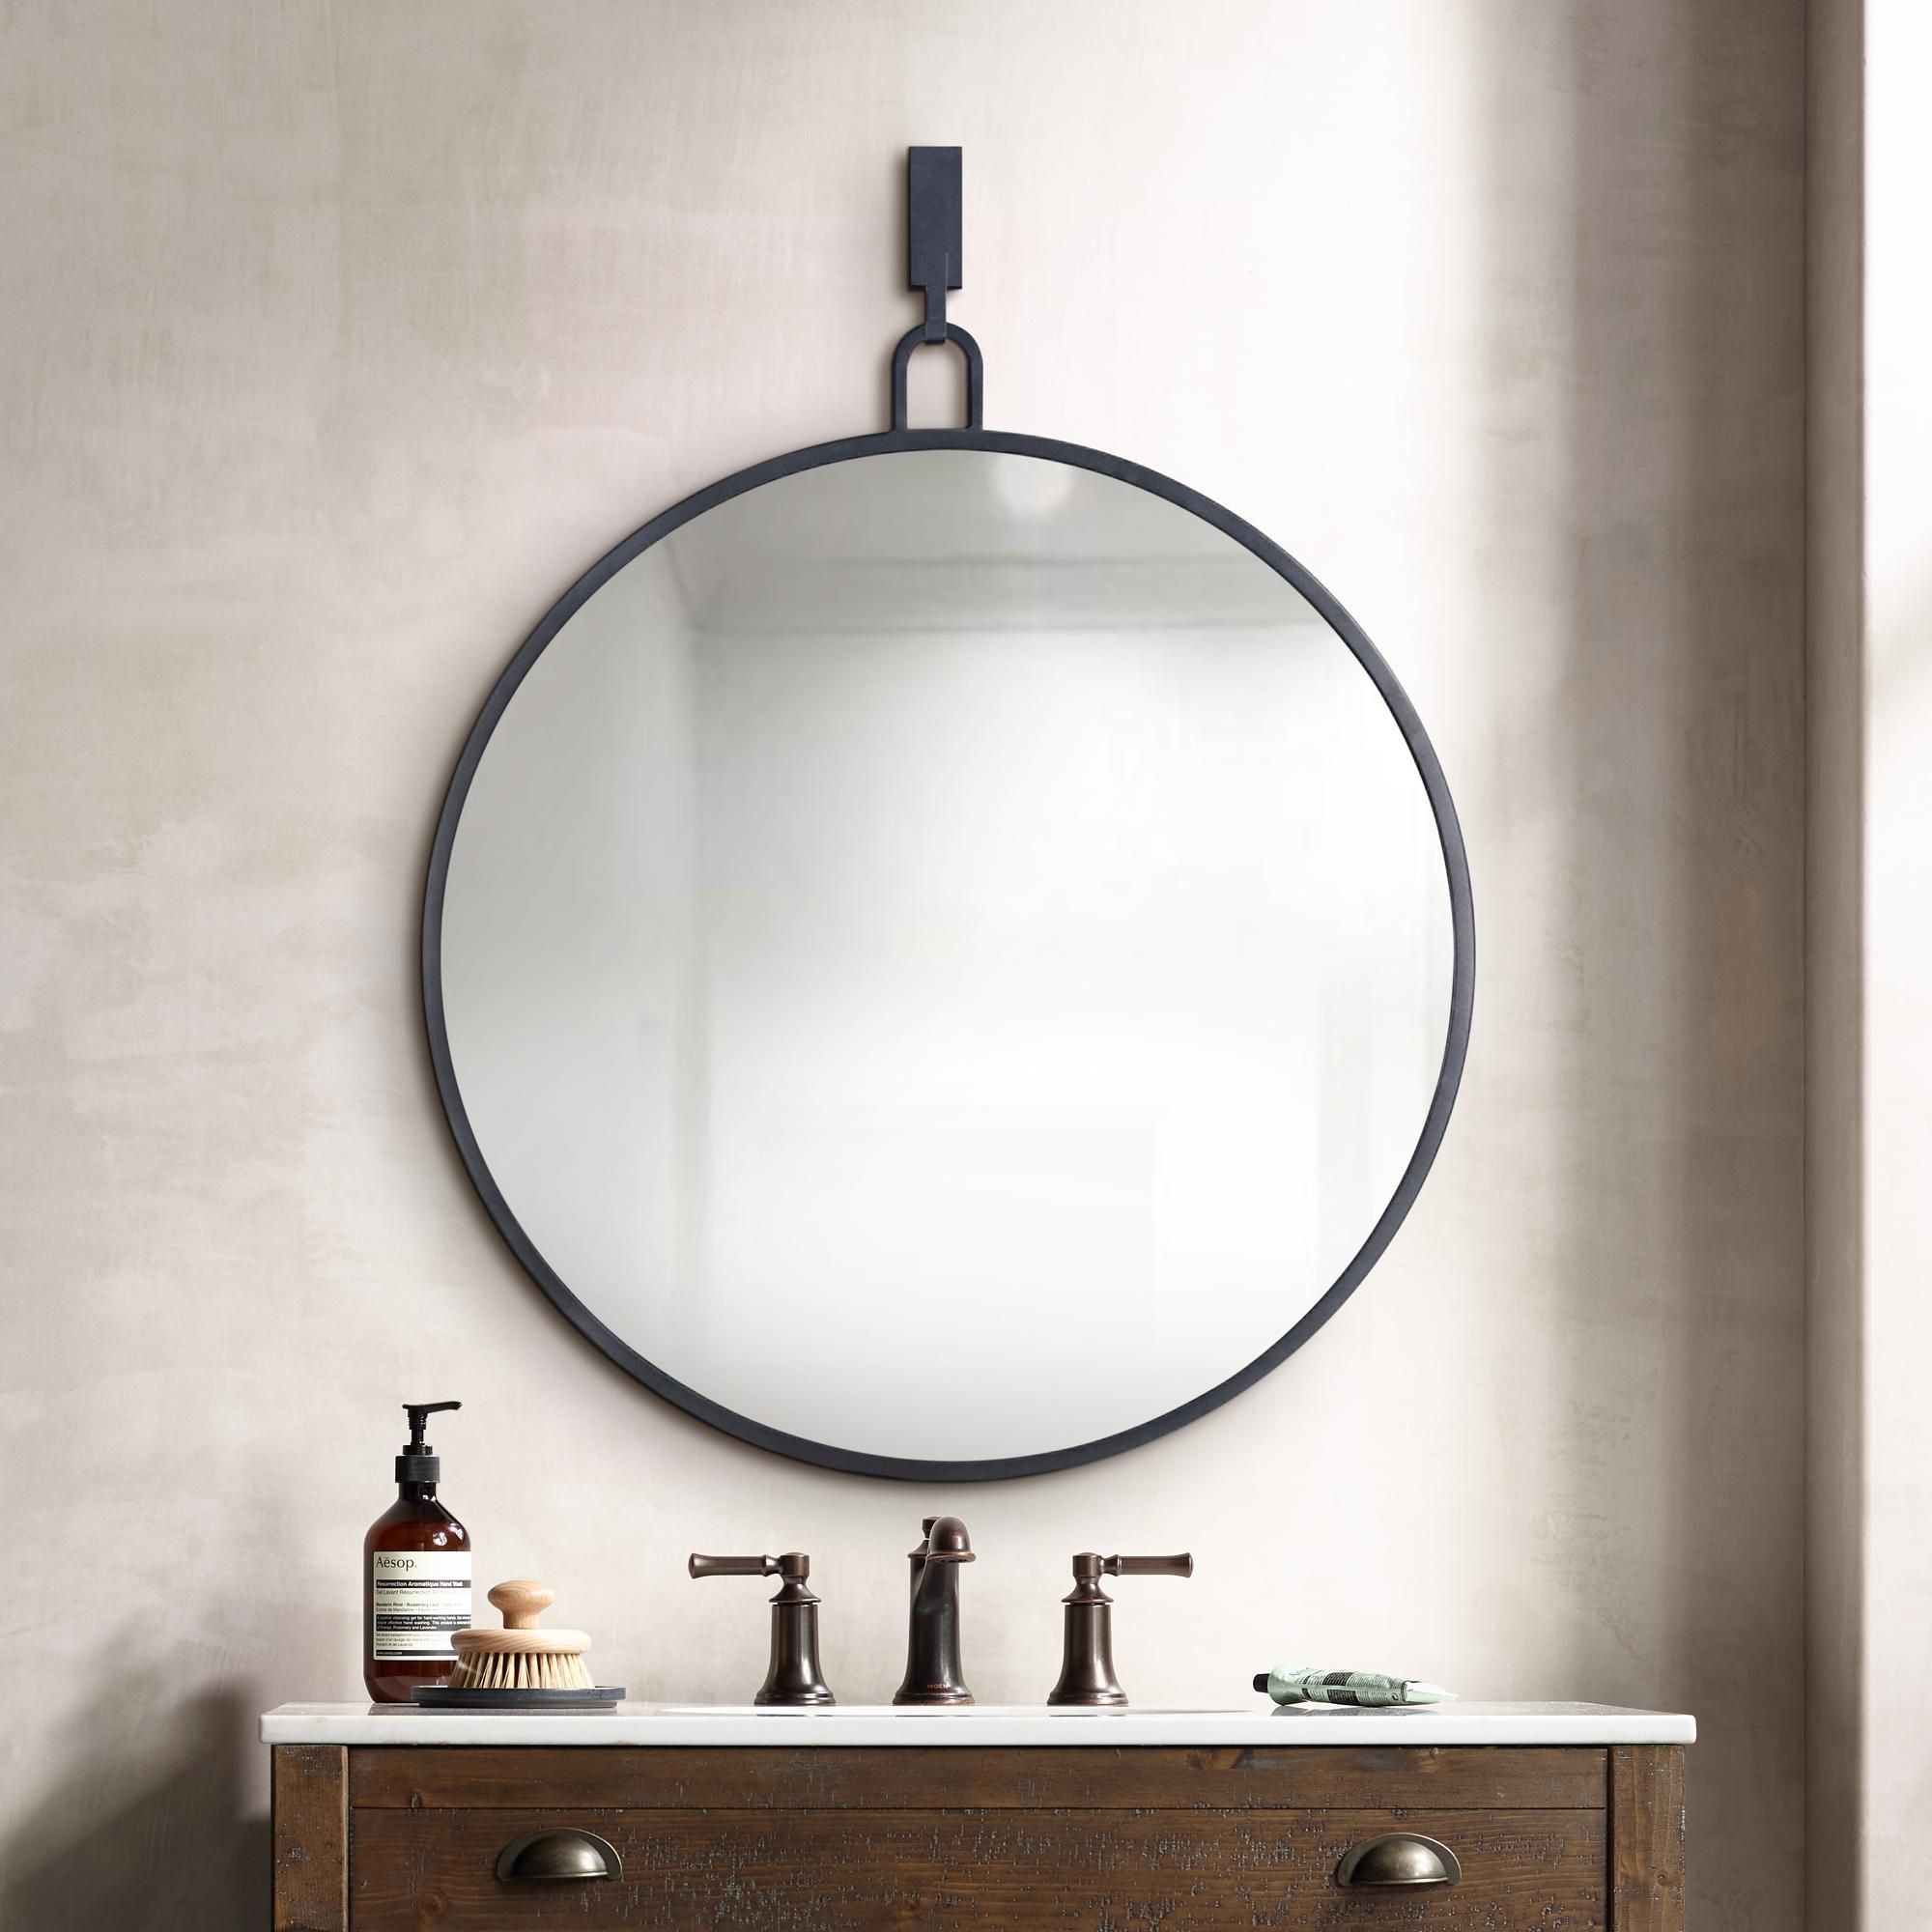 Mirrors Varaluz Casa Eli Black 30 X 32 Round Stopwatch Wall Mirror In 2020 Round Mirror Bathroom Black Bathroom Mirrors Mirror Wall